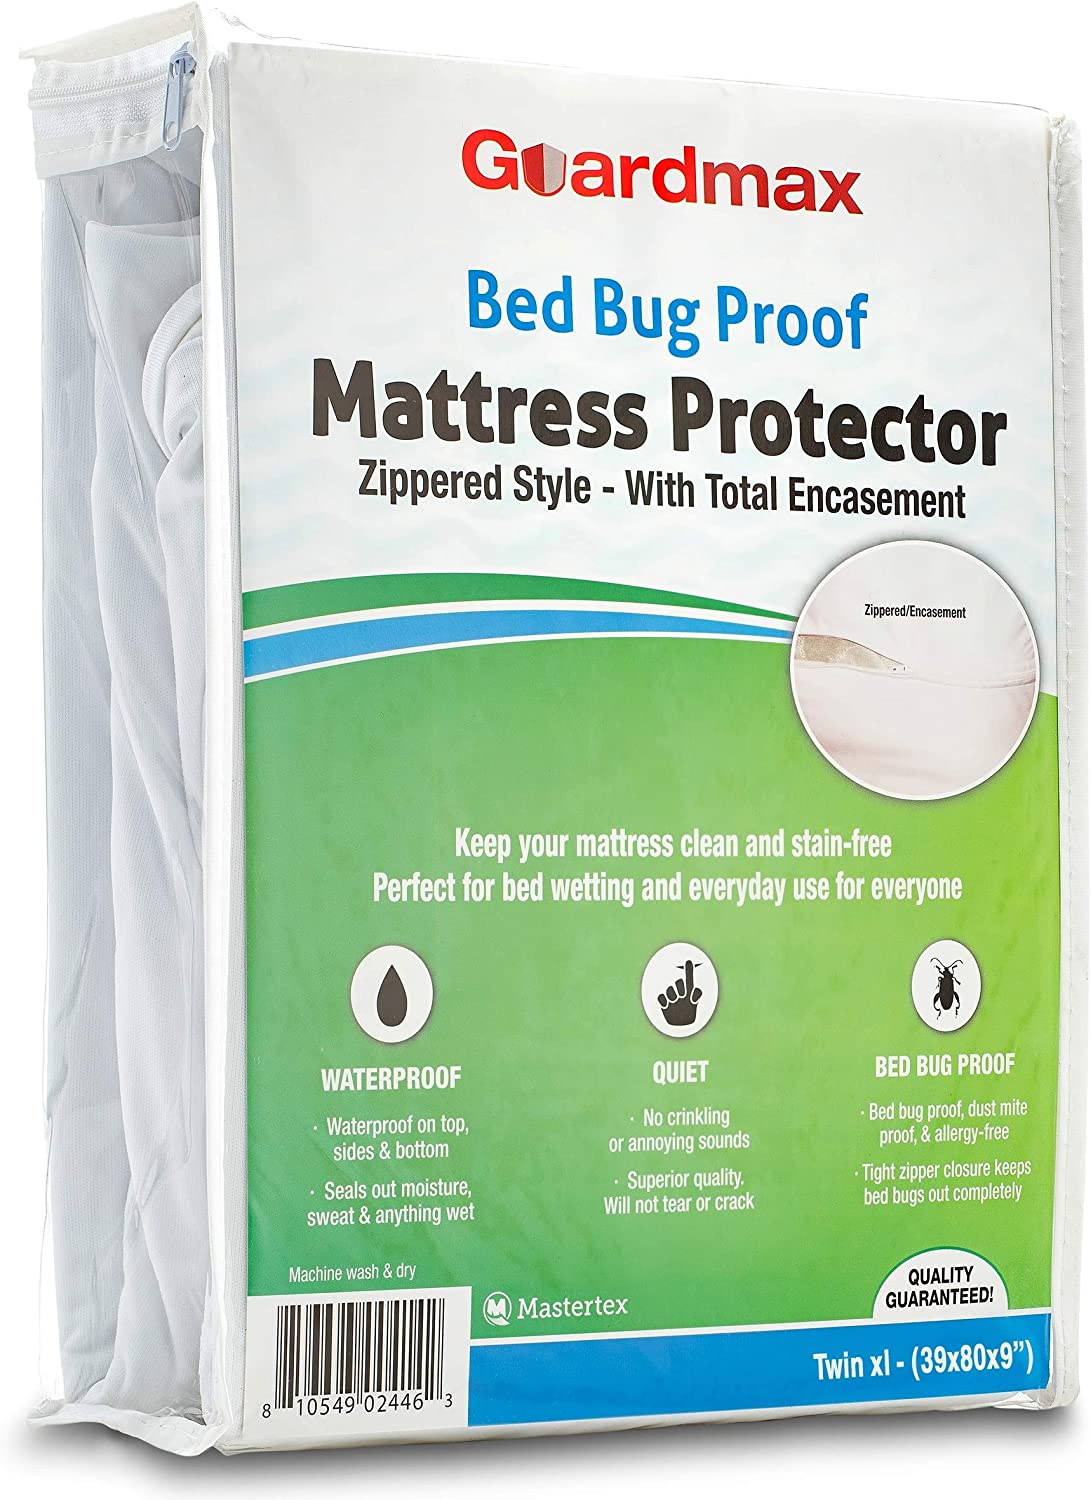 Guardmax Twin Extra Long Mattress Protector Cover Zippered   100% Waterproof Bed Bug Encasement   Soft, Hypoallergenic and Breathable   Twin XL Size (39x80x9)